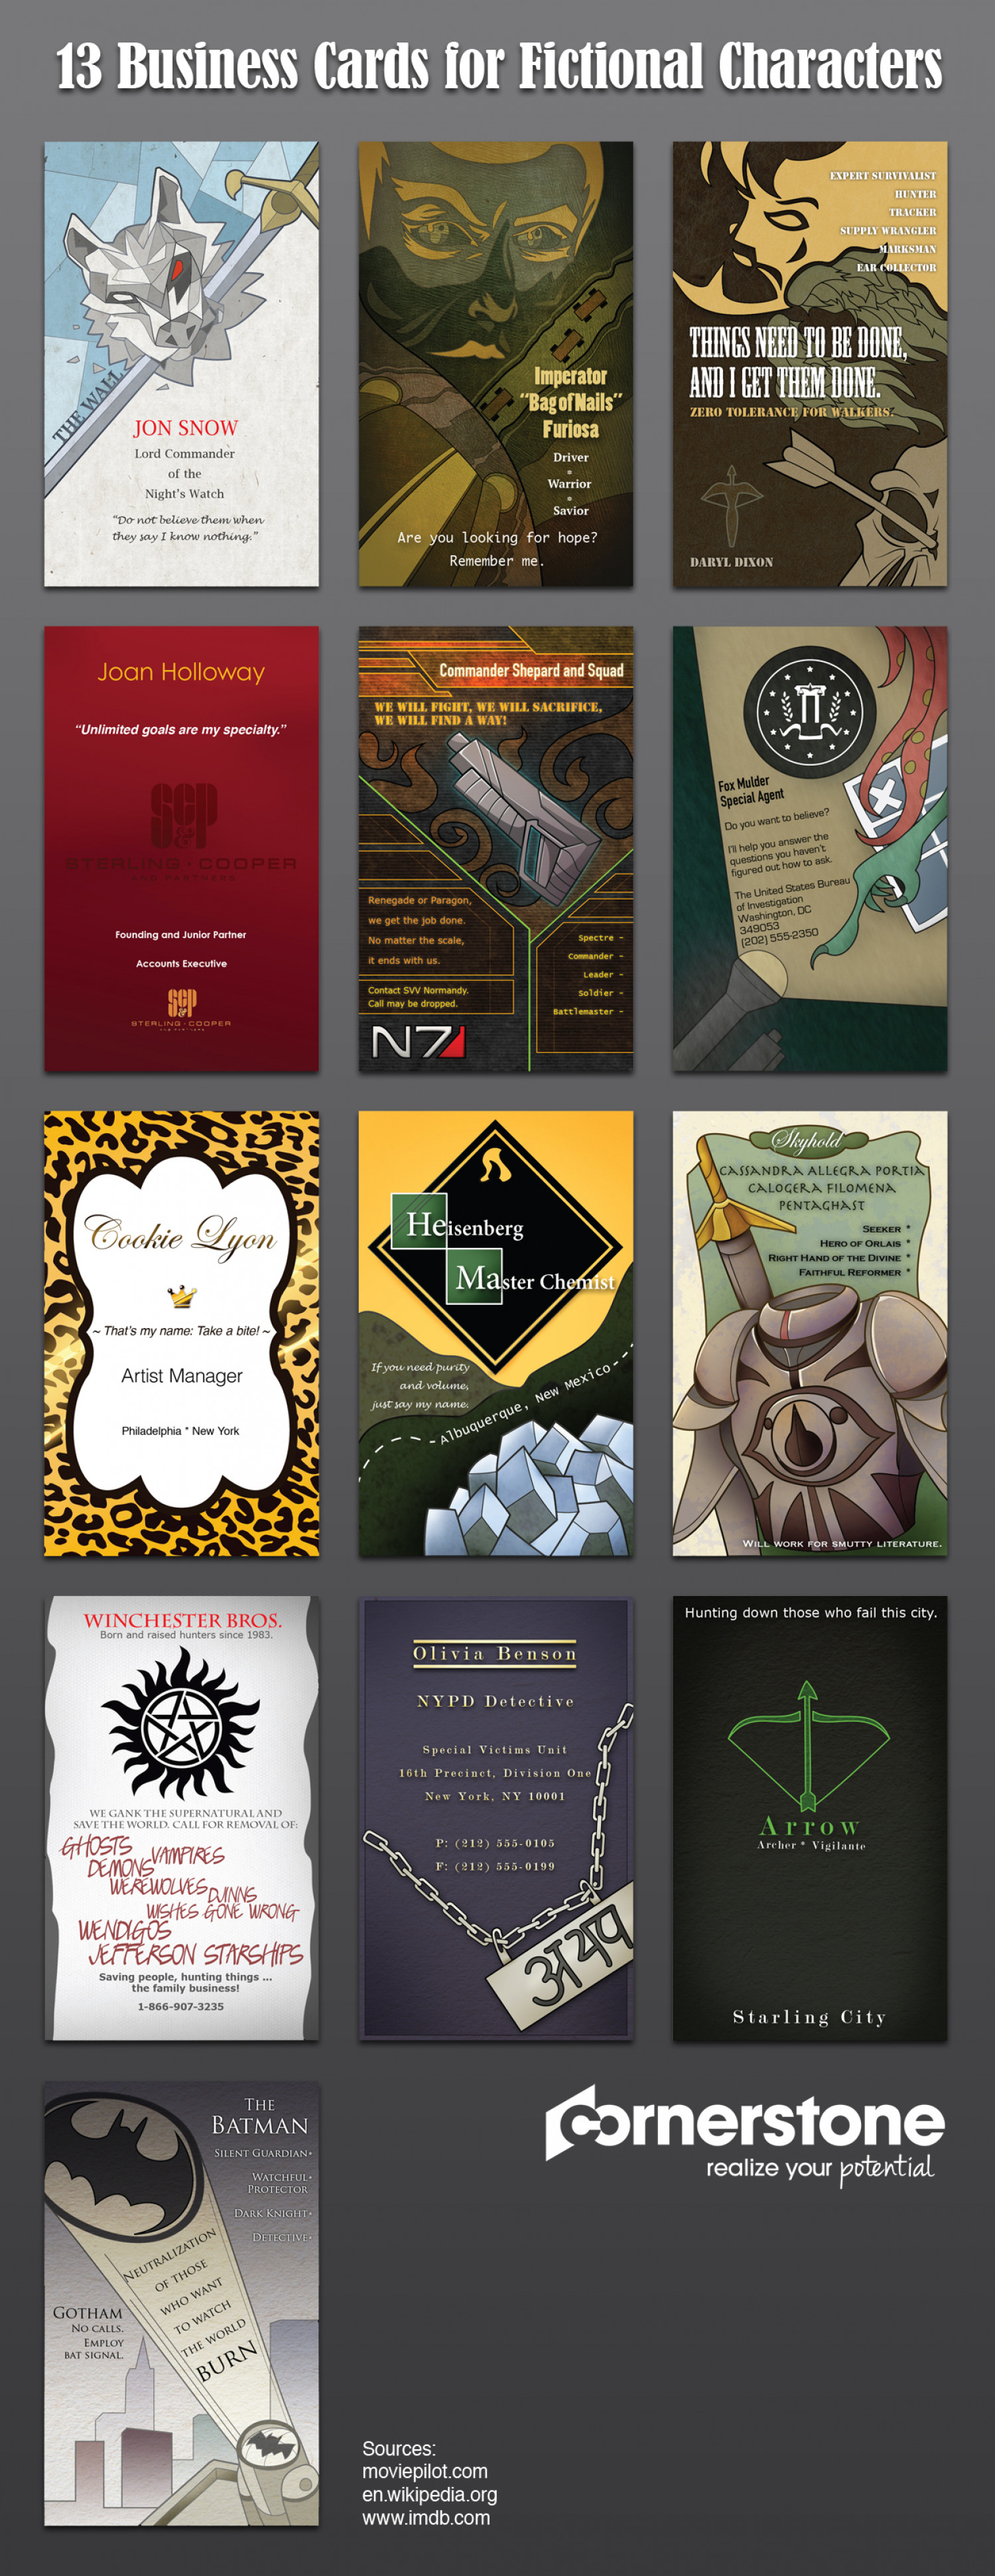 13 Business Cards for Fictional Characters Infographic